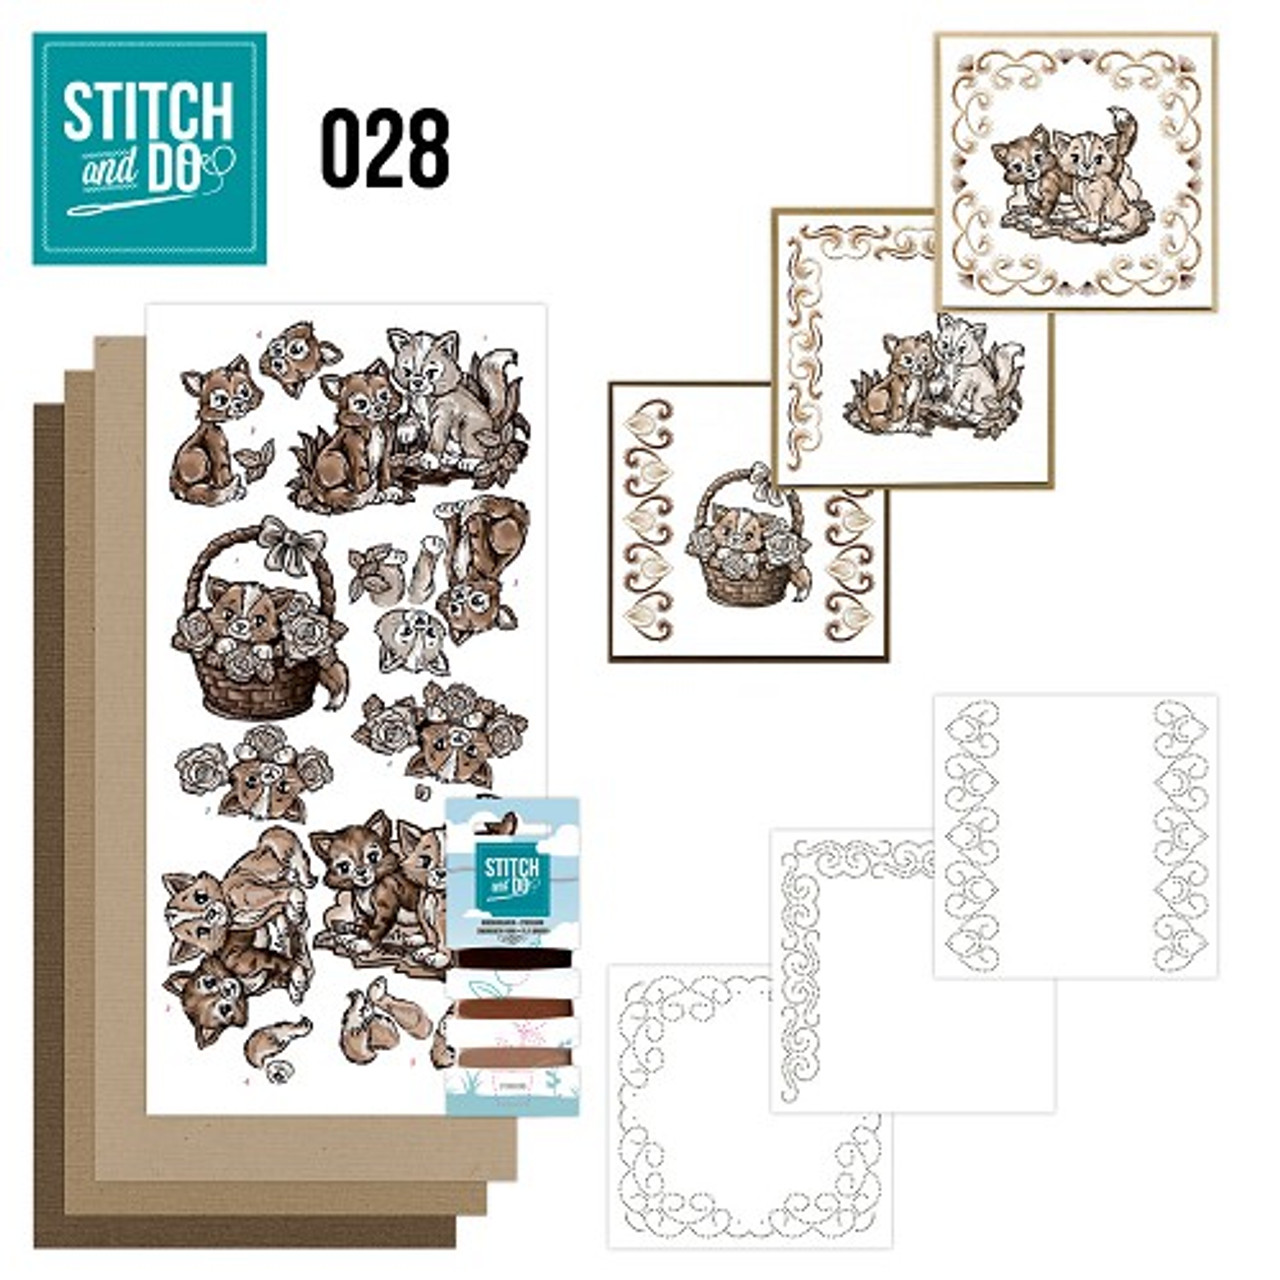 Stitch and Do 28 - Card Embroidery Kit - Brown Cats